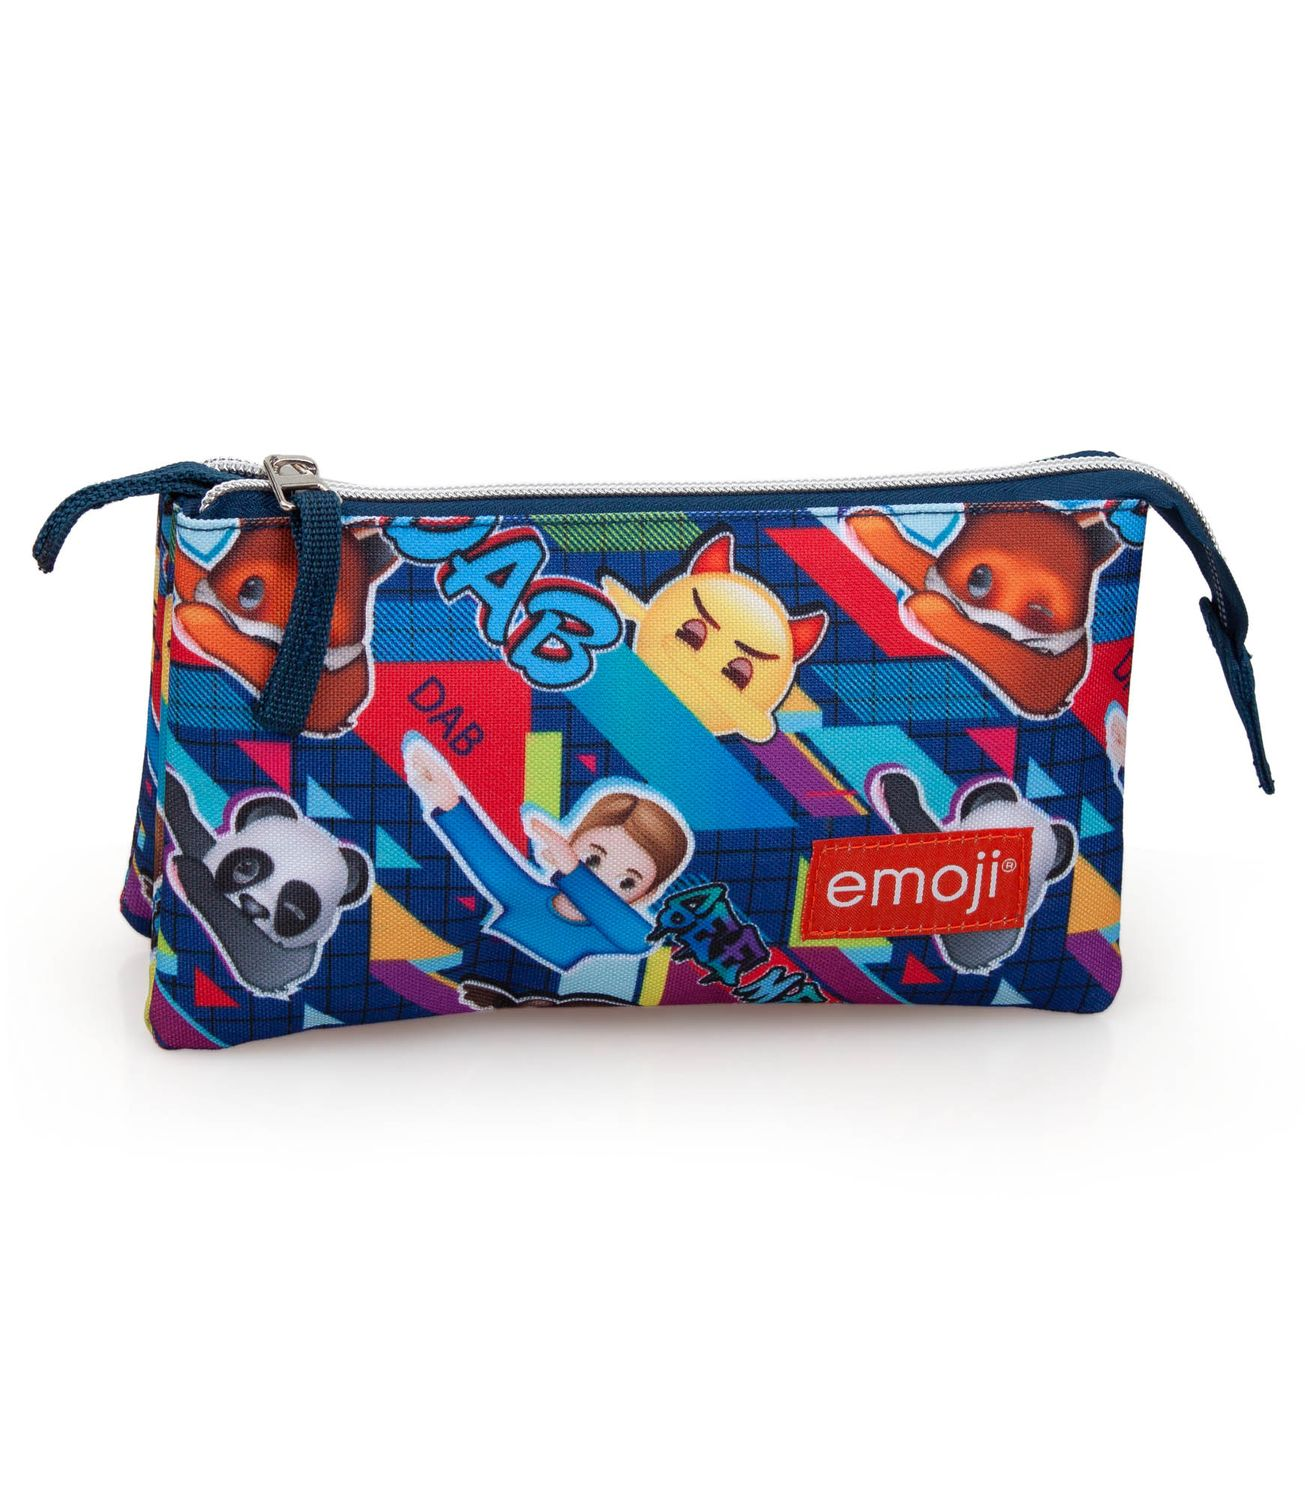 Triple Compartment Pencil Case EMOJI Official DAB – image 1